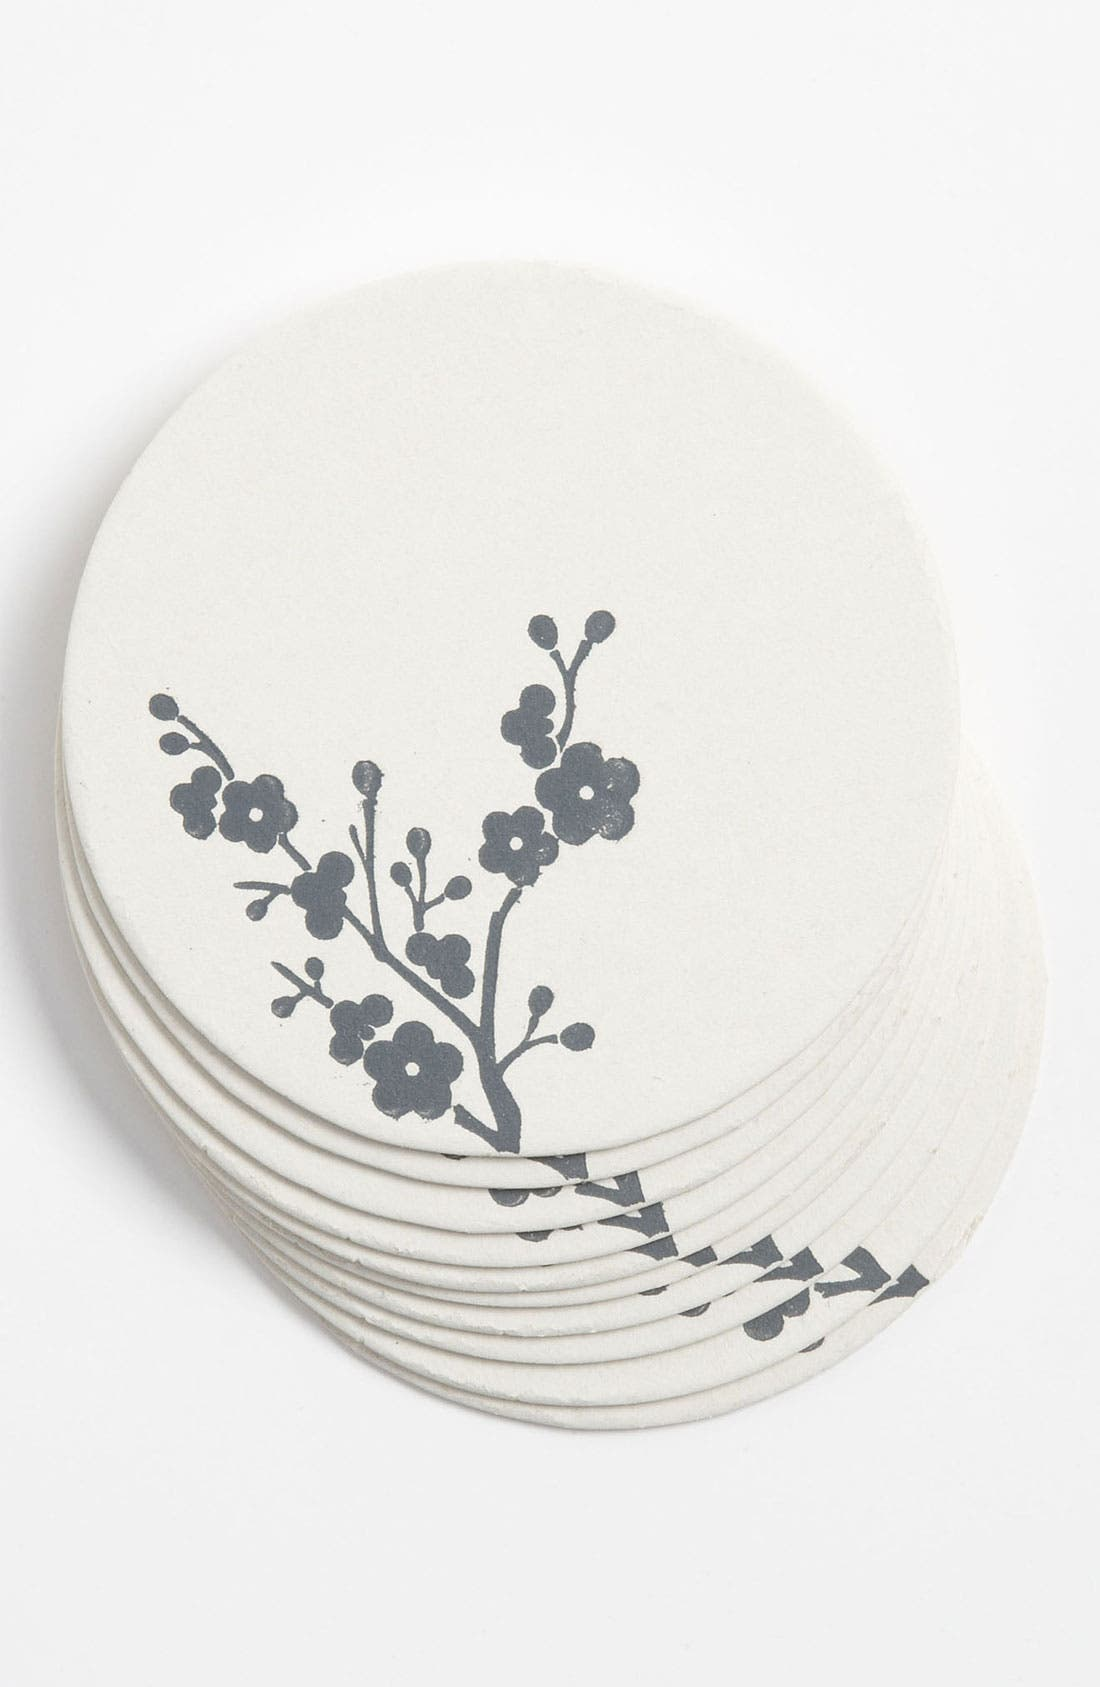 Alternate Image 1 Selected - herry Blossoms' Letterpress Coasters (Set of 10)